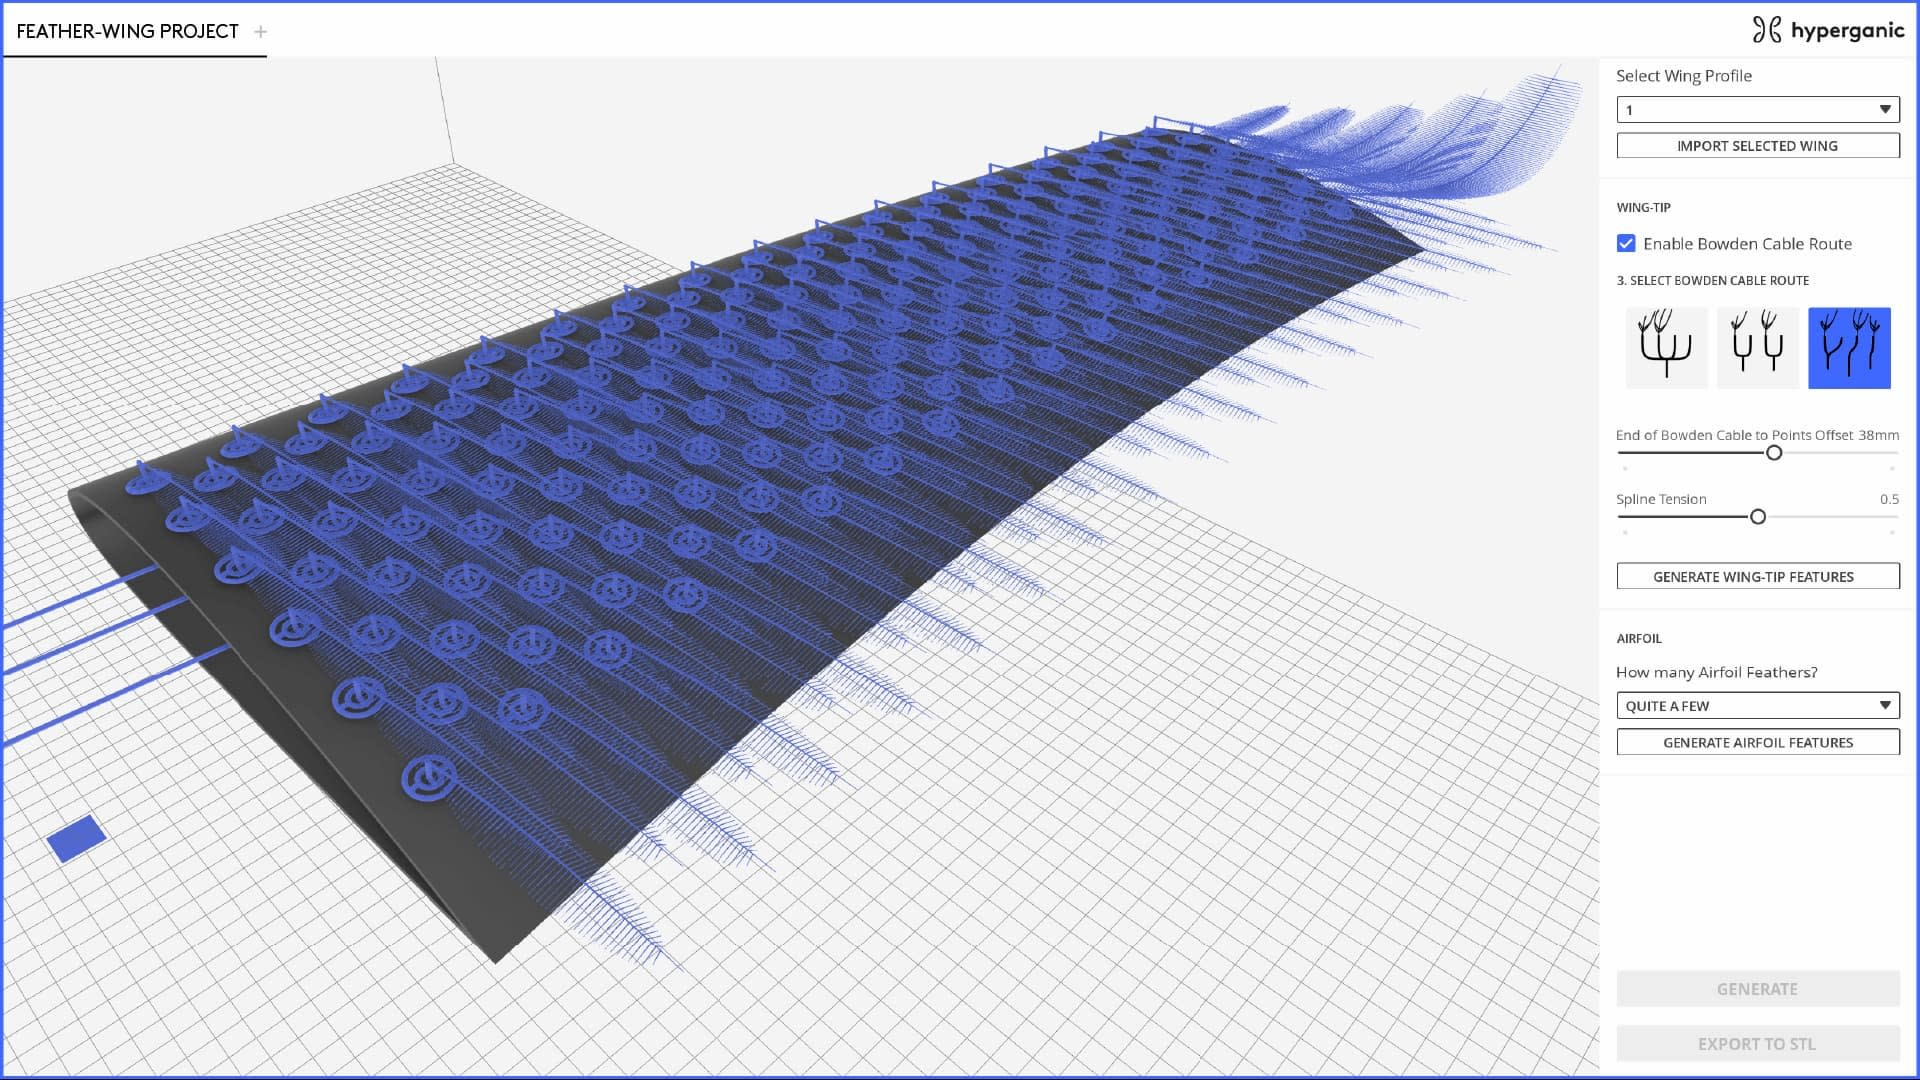 — Research and Development of the Feather-Wing Model, Built Using Hyperganic's Additive Manufacturing Software.